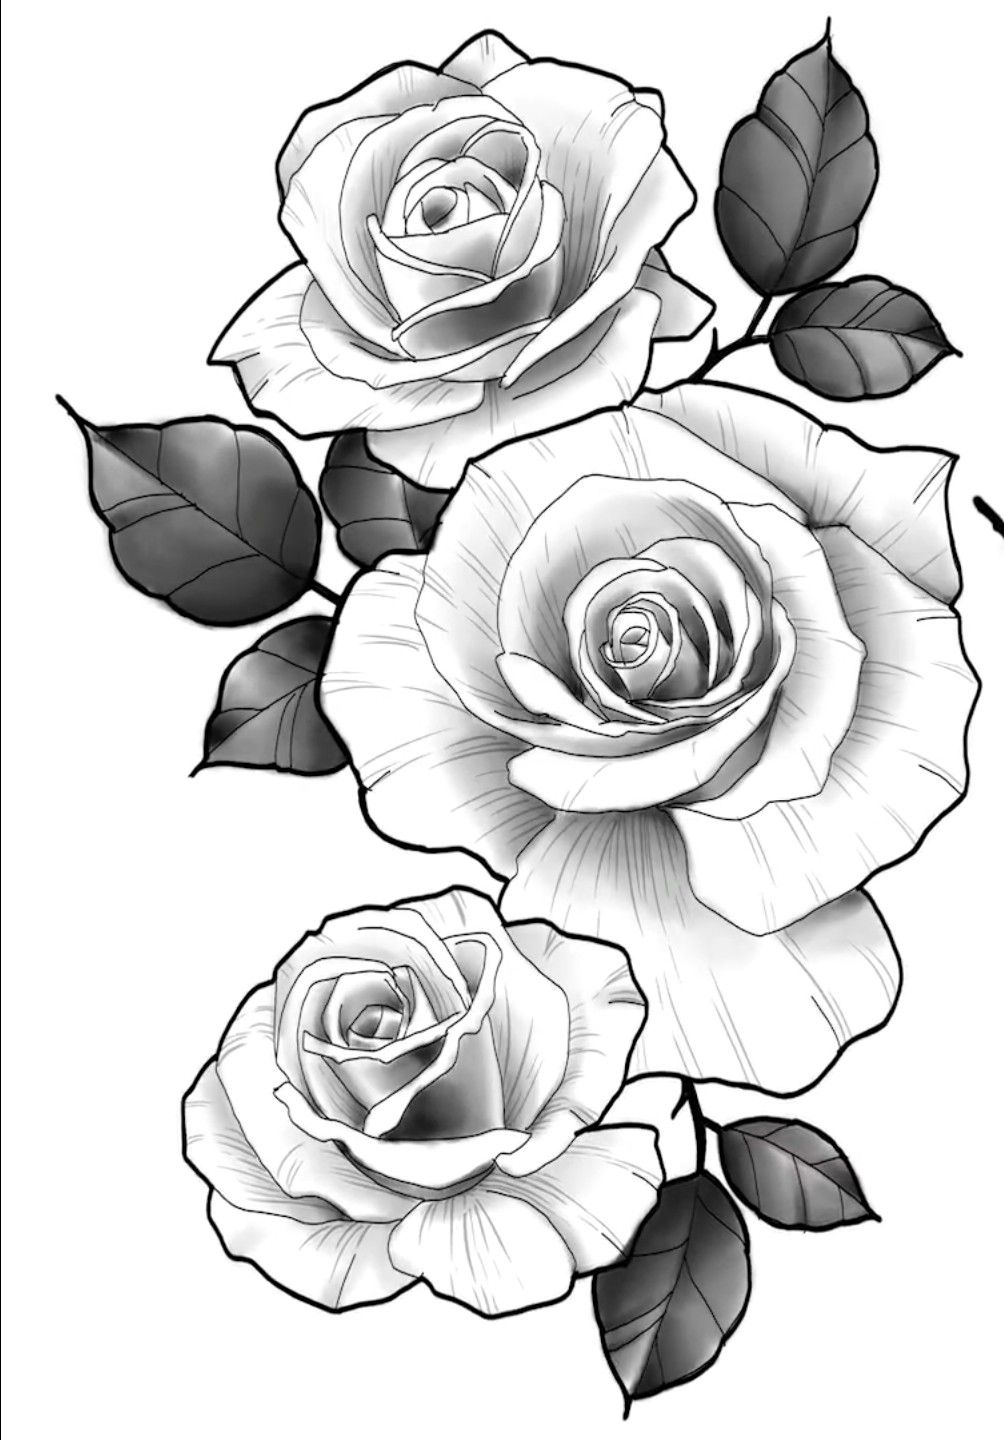 Roses Vetoe Black Label Art Co Los Angeles Usa Tatuagem